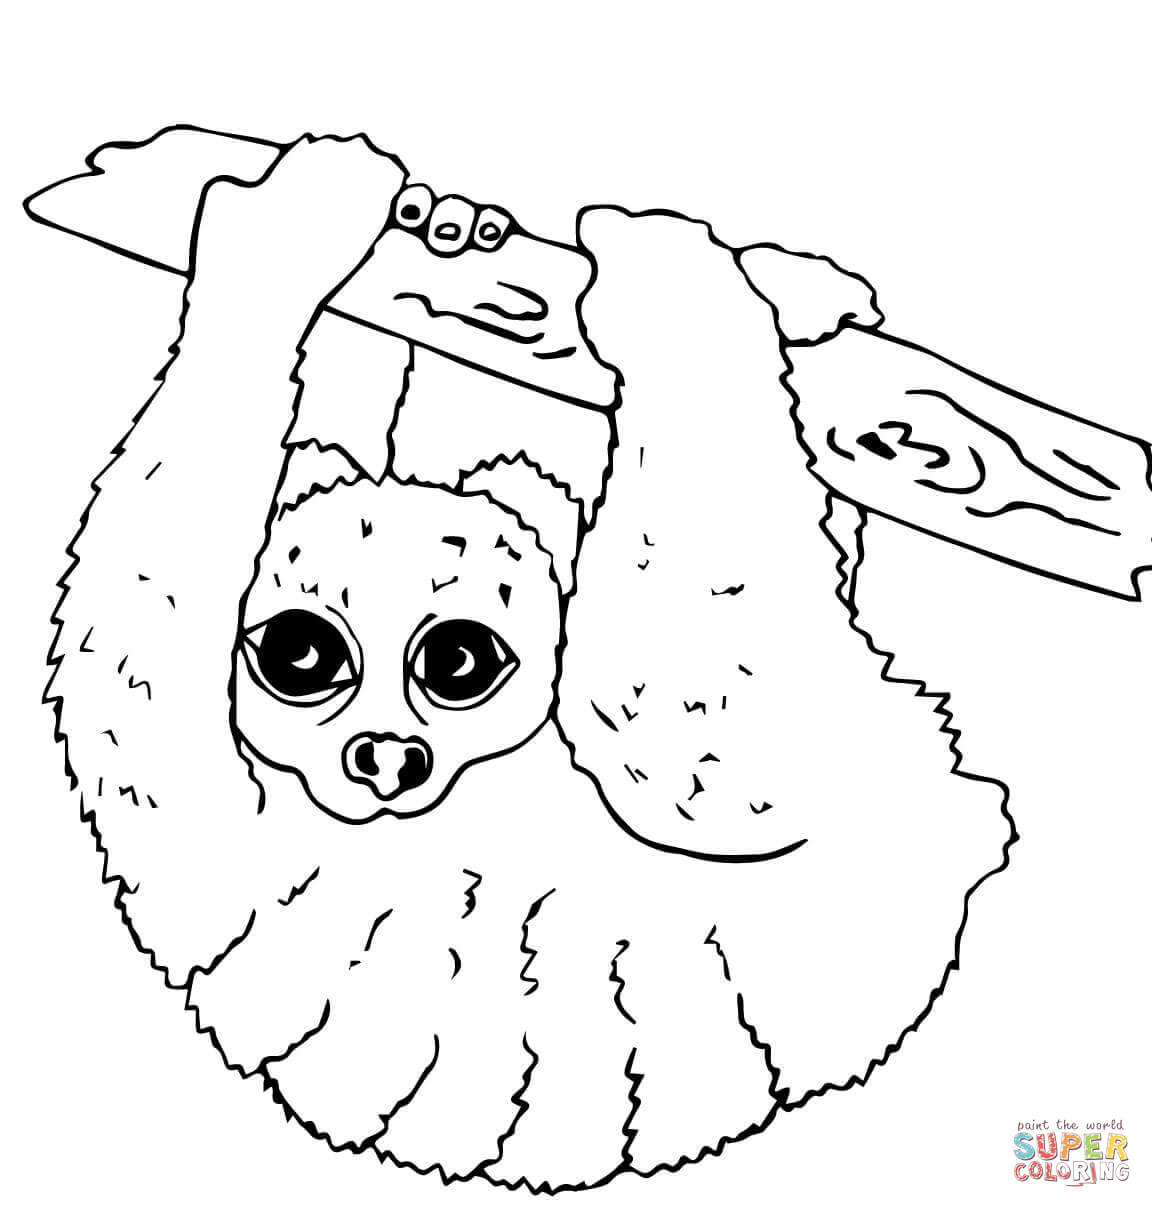 nocturnal animals coloring pages free coloring pages of nocturnal animals coloring page blog pages animals nocturnal coloring